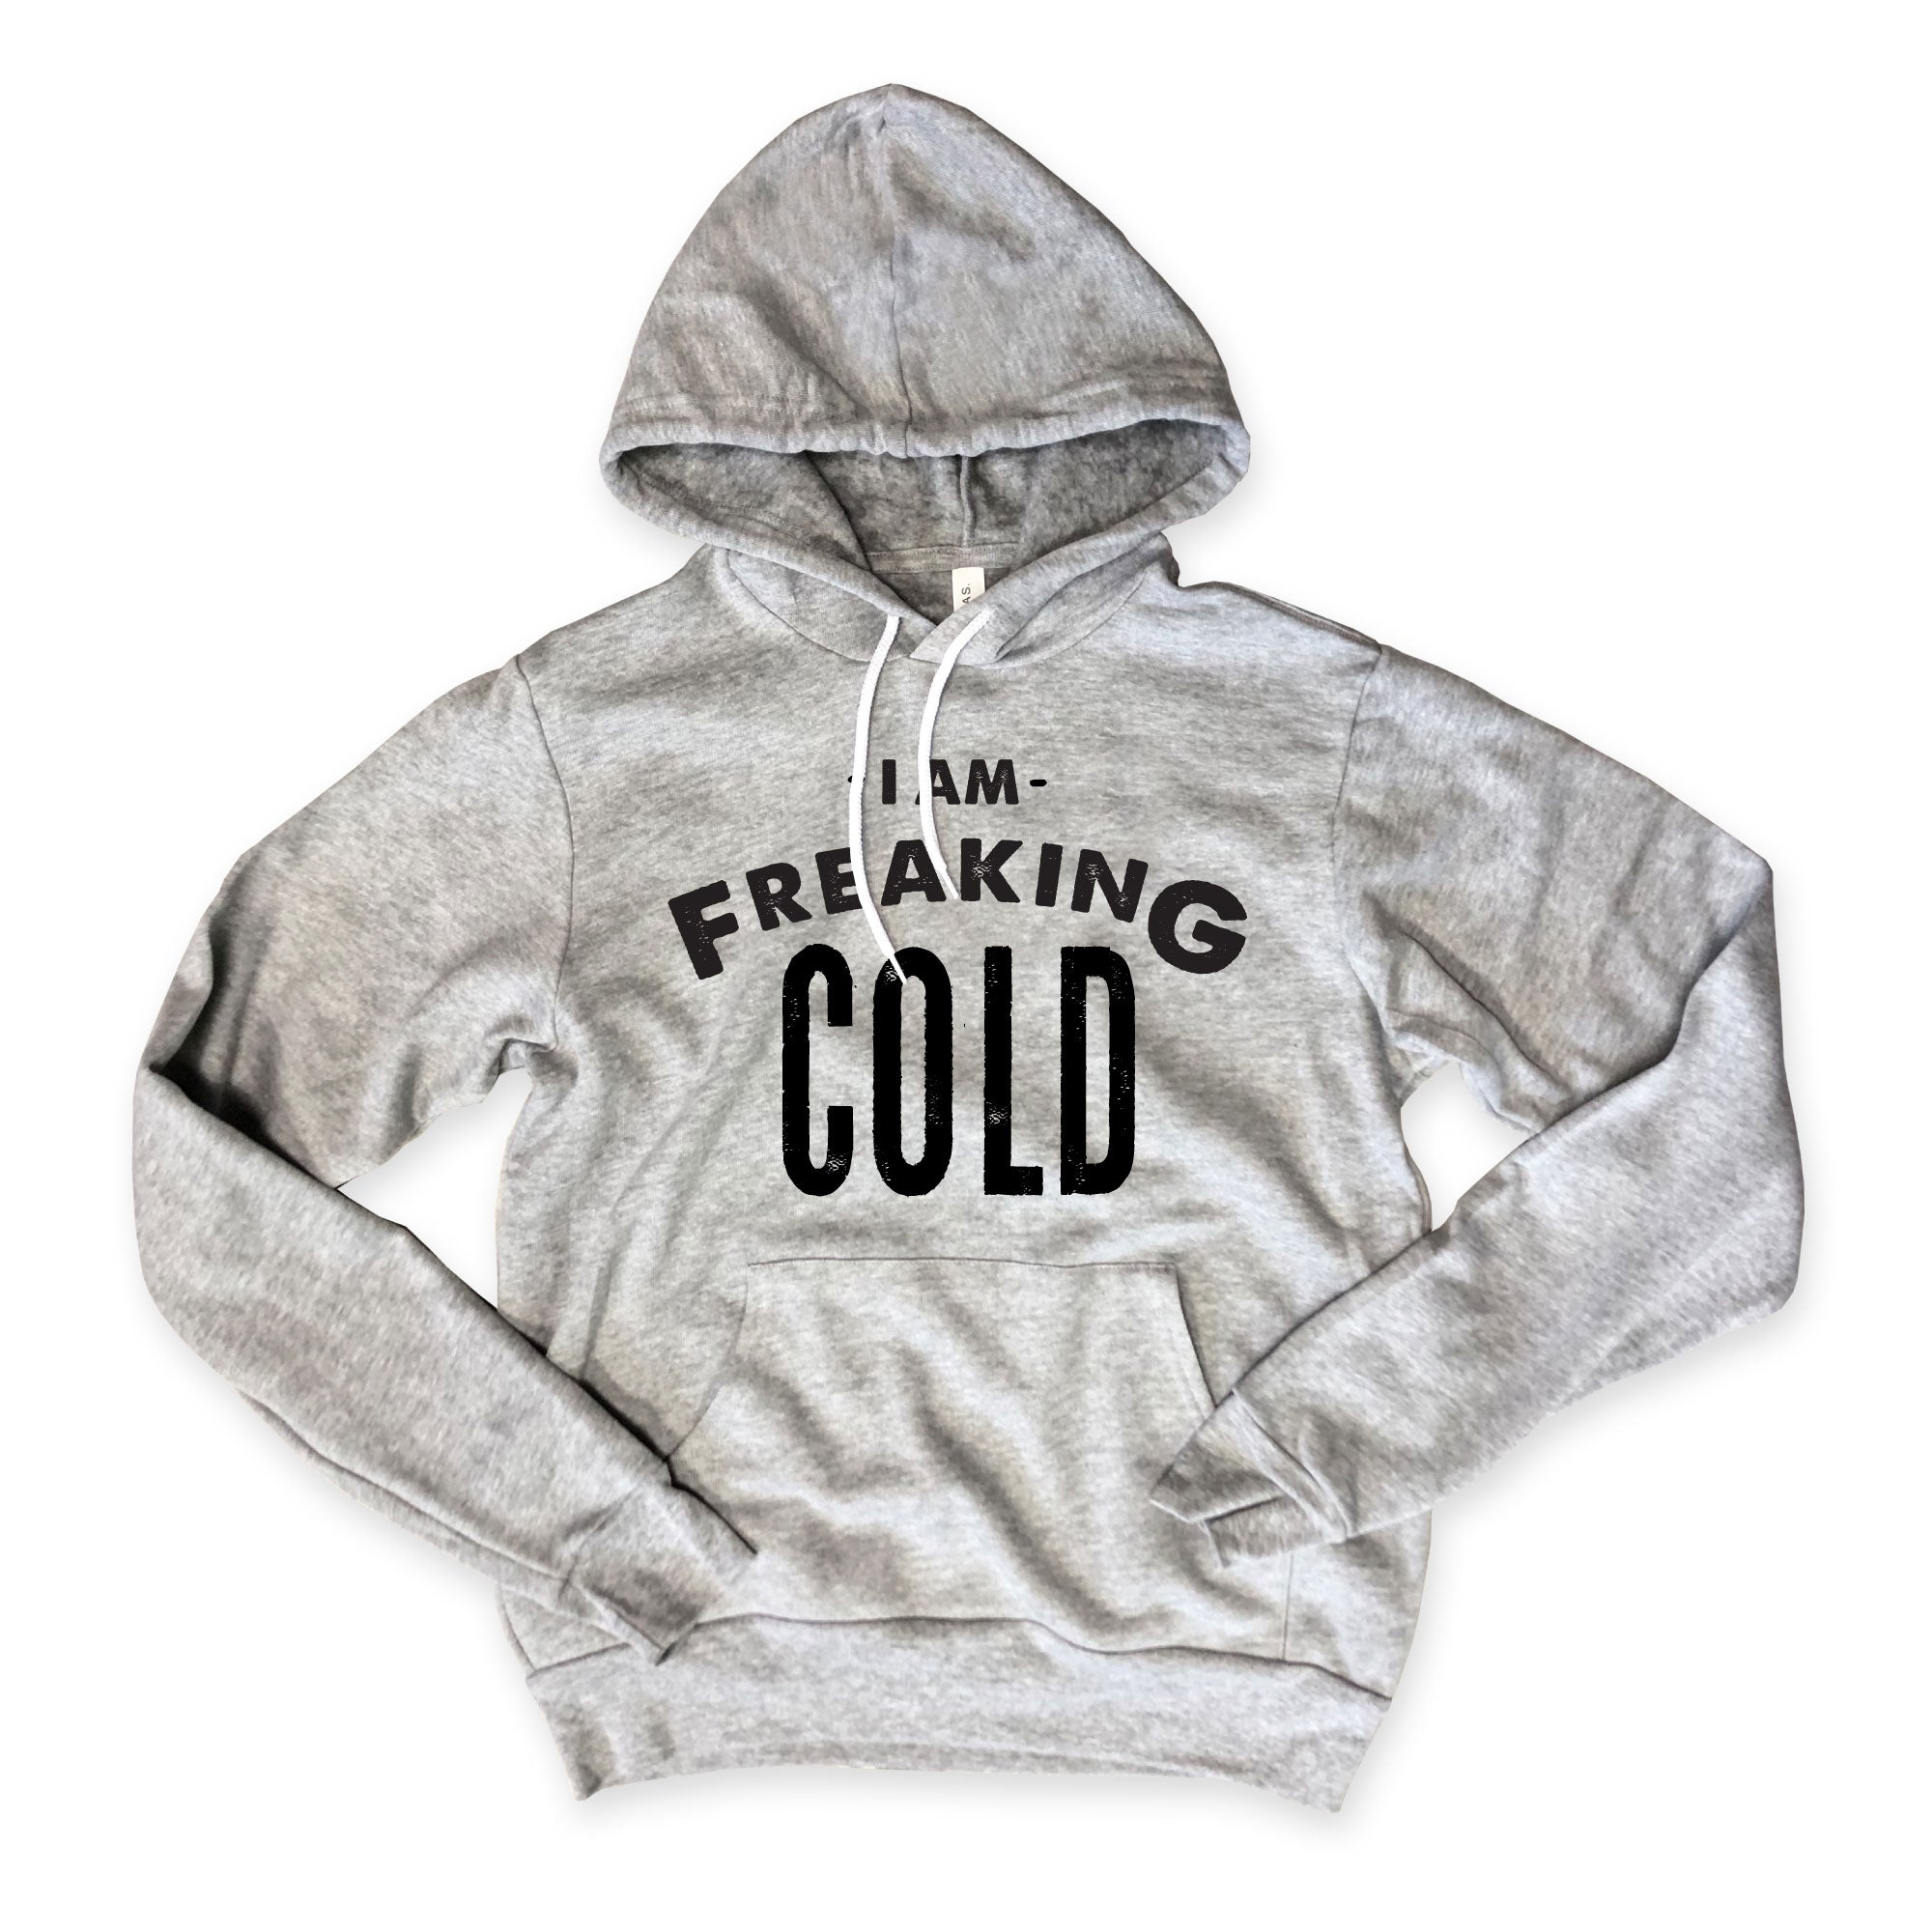 I'm Freaking Cold...Unisex Super Cozy Hooded Sweatshirt